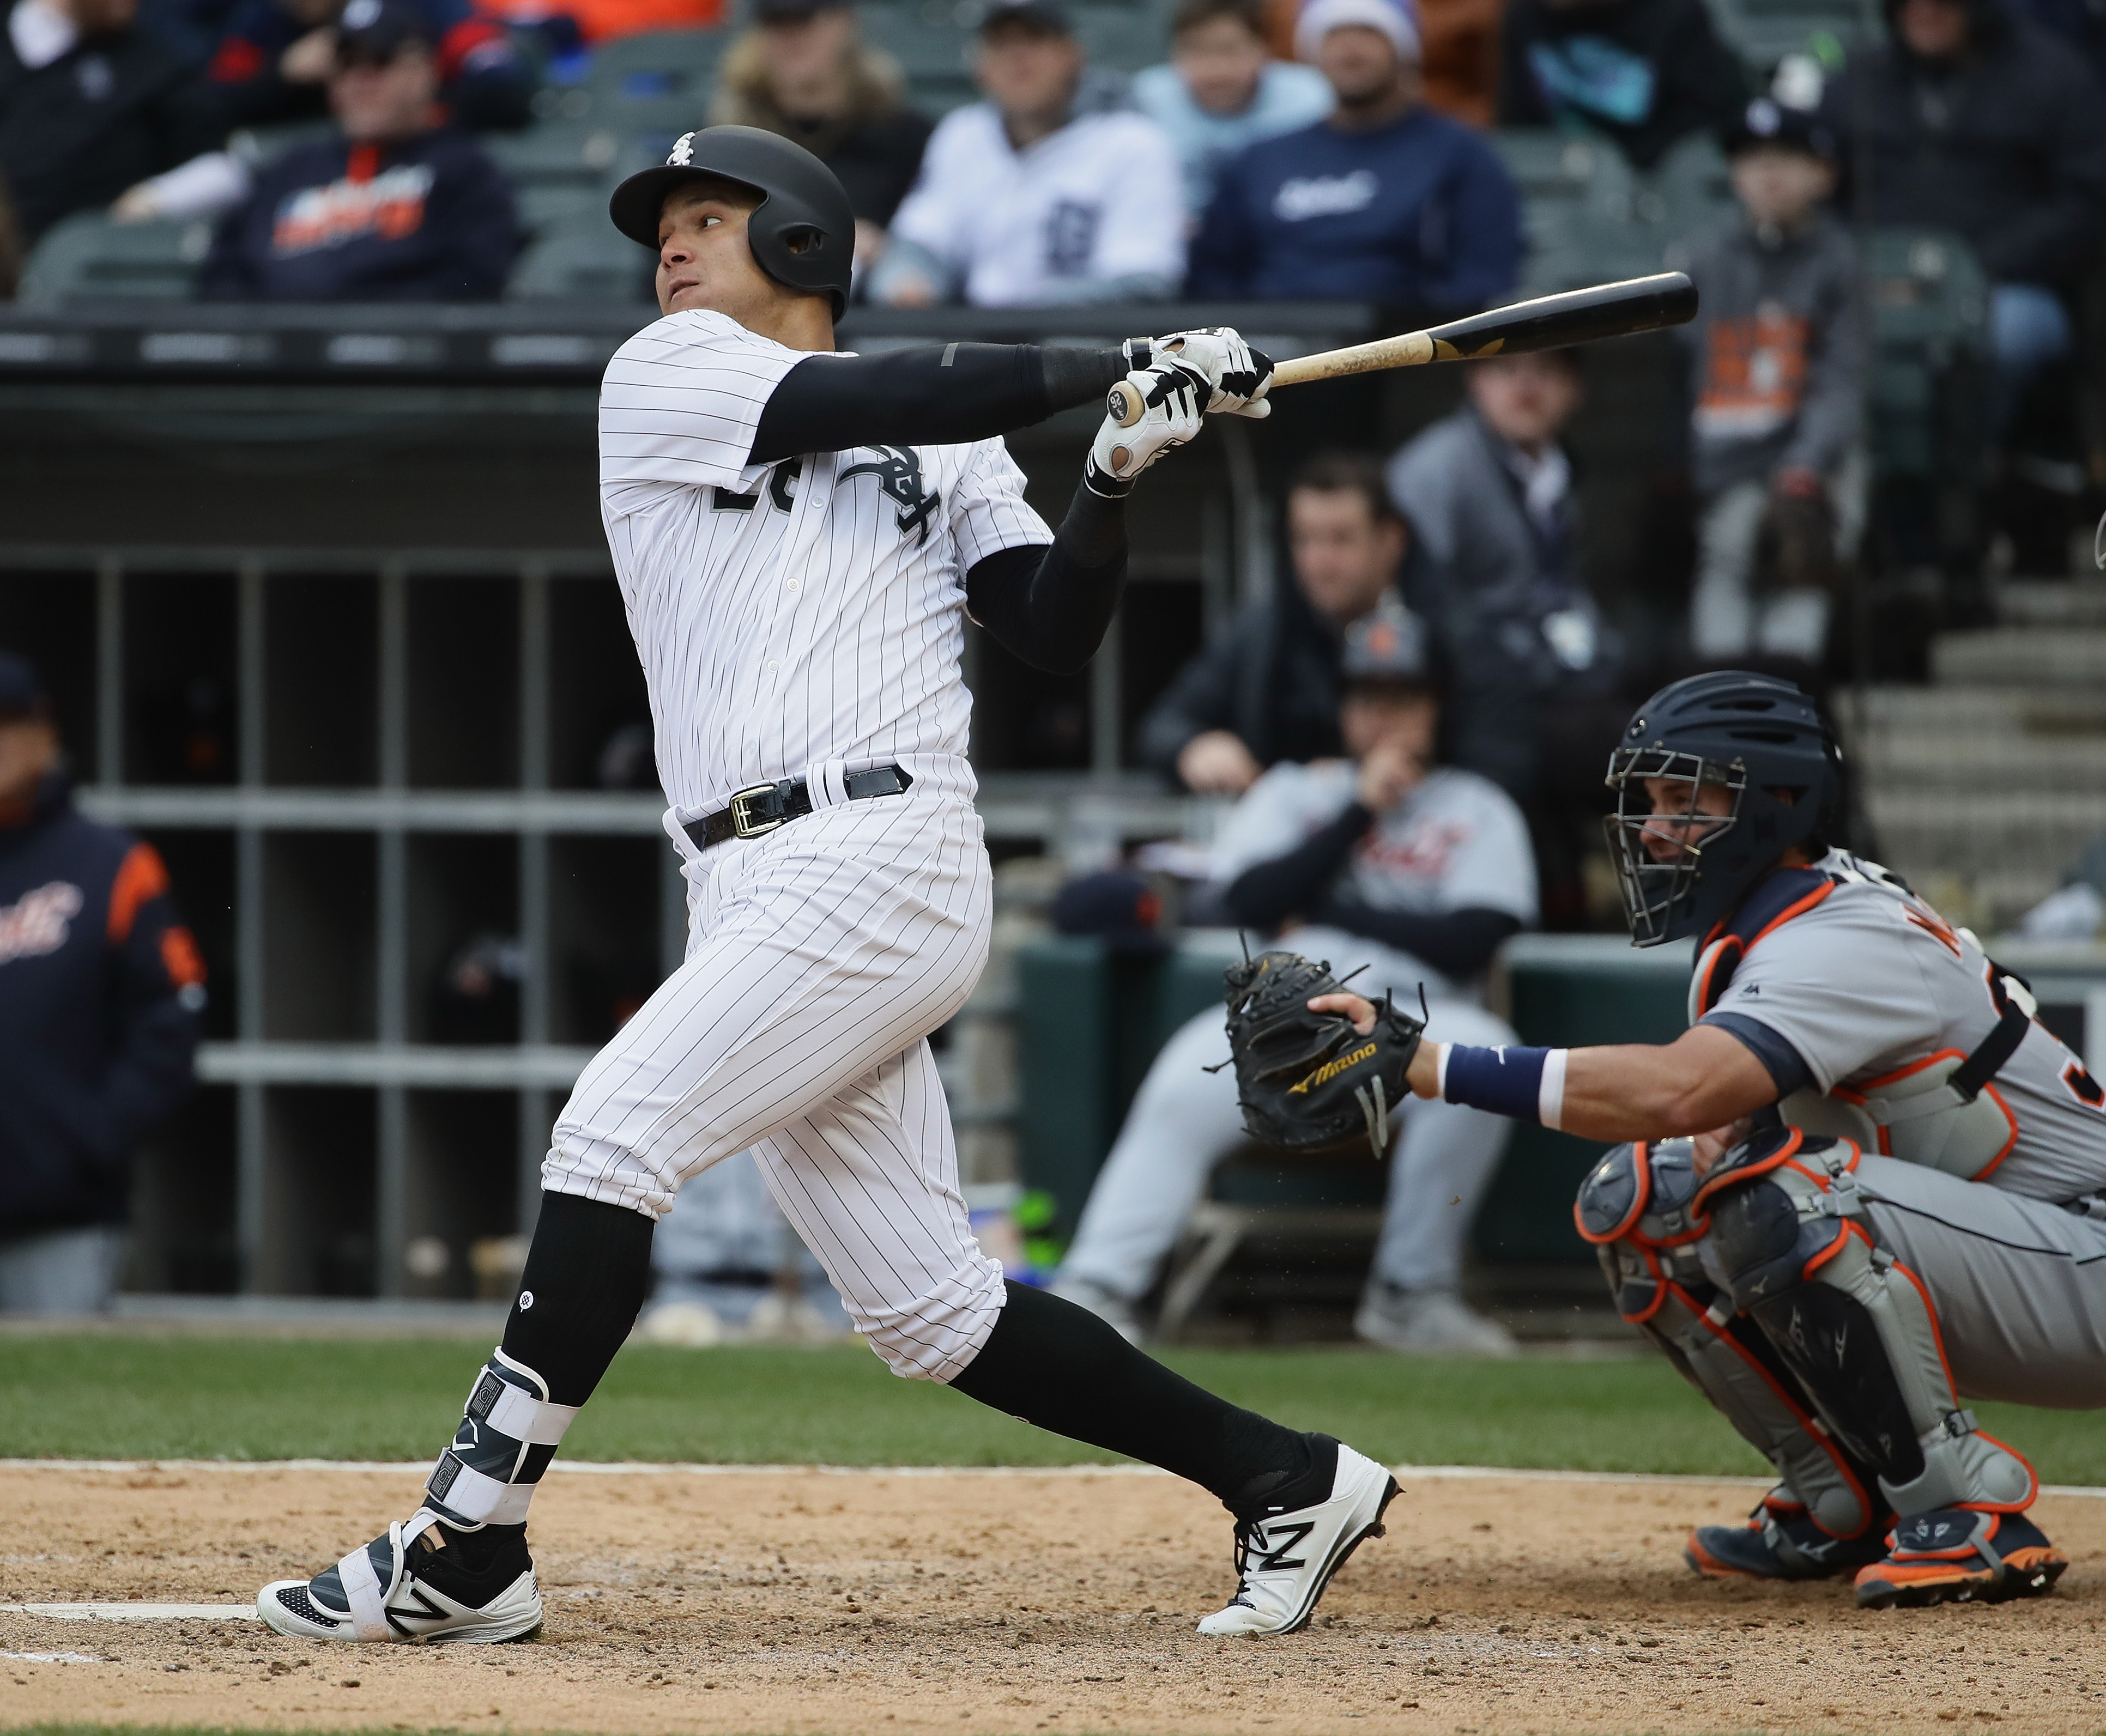 Avisail Garcia Is Still Swinging a lot, But in a Different Way